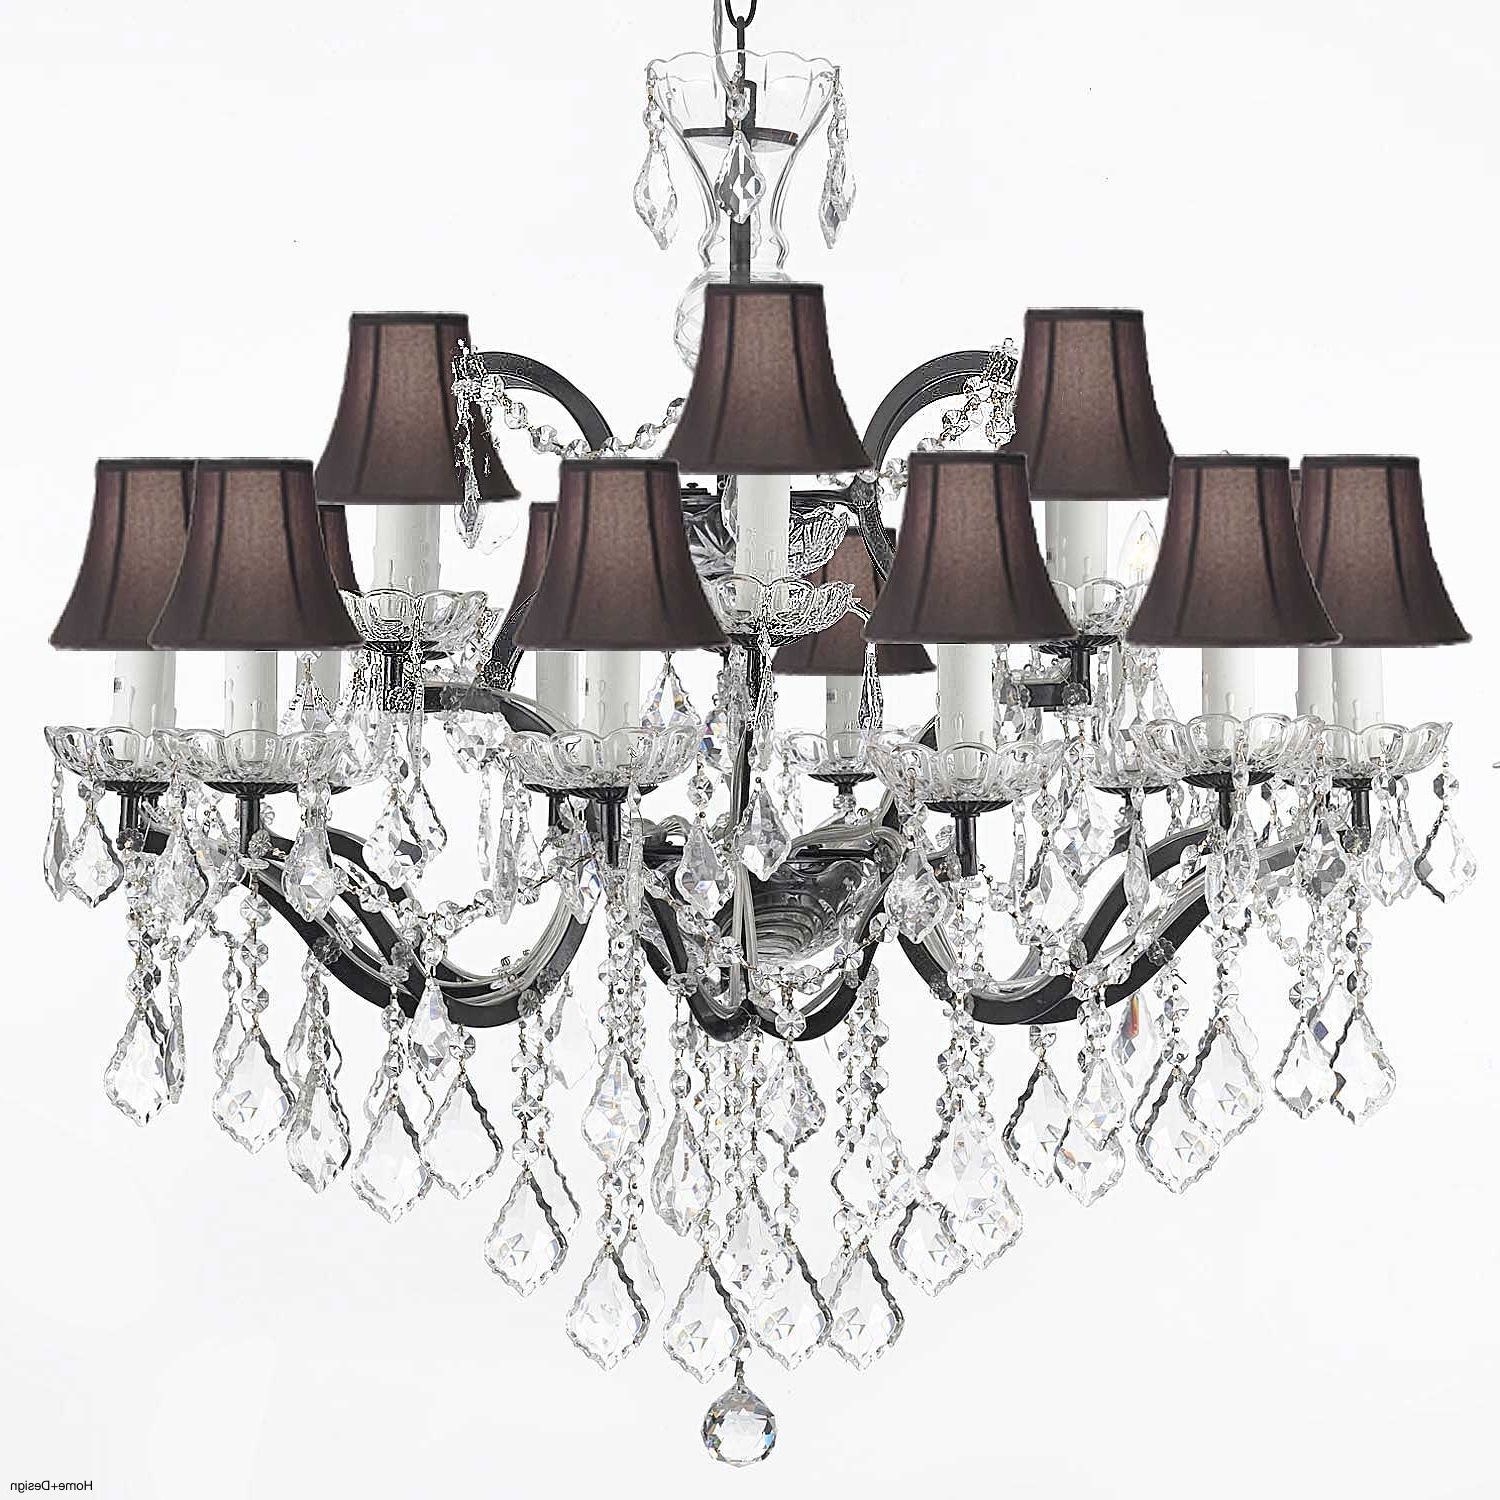 2017 Clip On Lamp Shades For Chandeliers Uk – Chandelier Designs With Clip On Chandeliers (View 1 of 15)